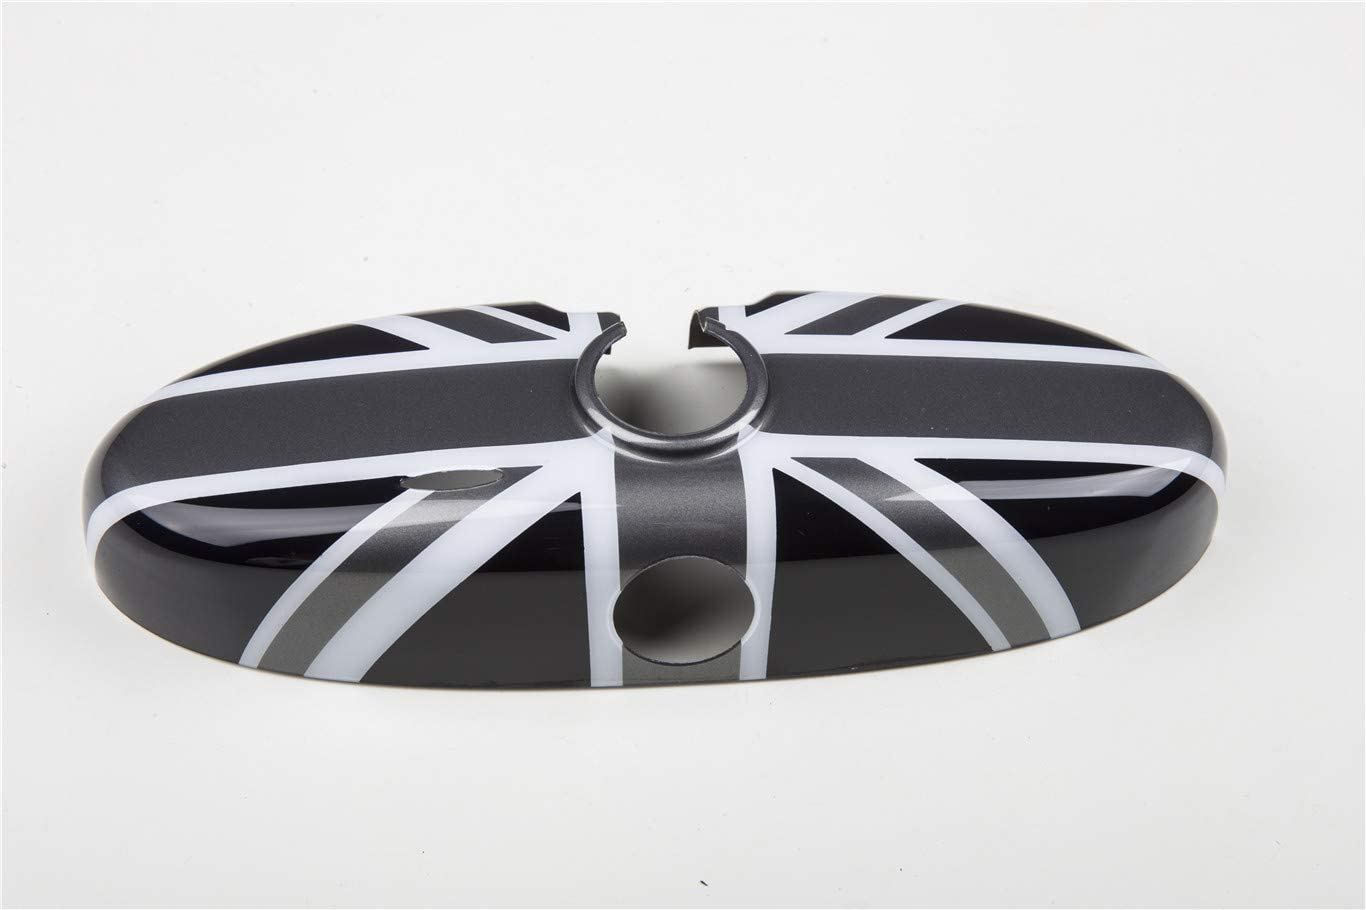 Door Handle with Key Hole 2 Pieces Black//Gold Union Jack UK Flag ABS Sticker Cover Trim Cap for Mini Cooper ONE S JCW R56 Hatchback R57 Covertible R58 Coupe R59 Roadster 2010-2016